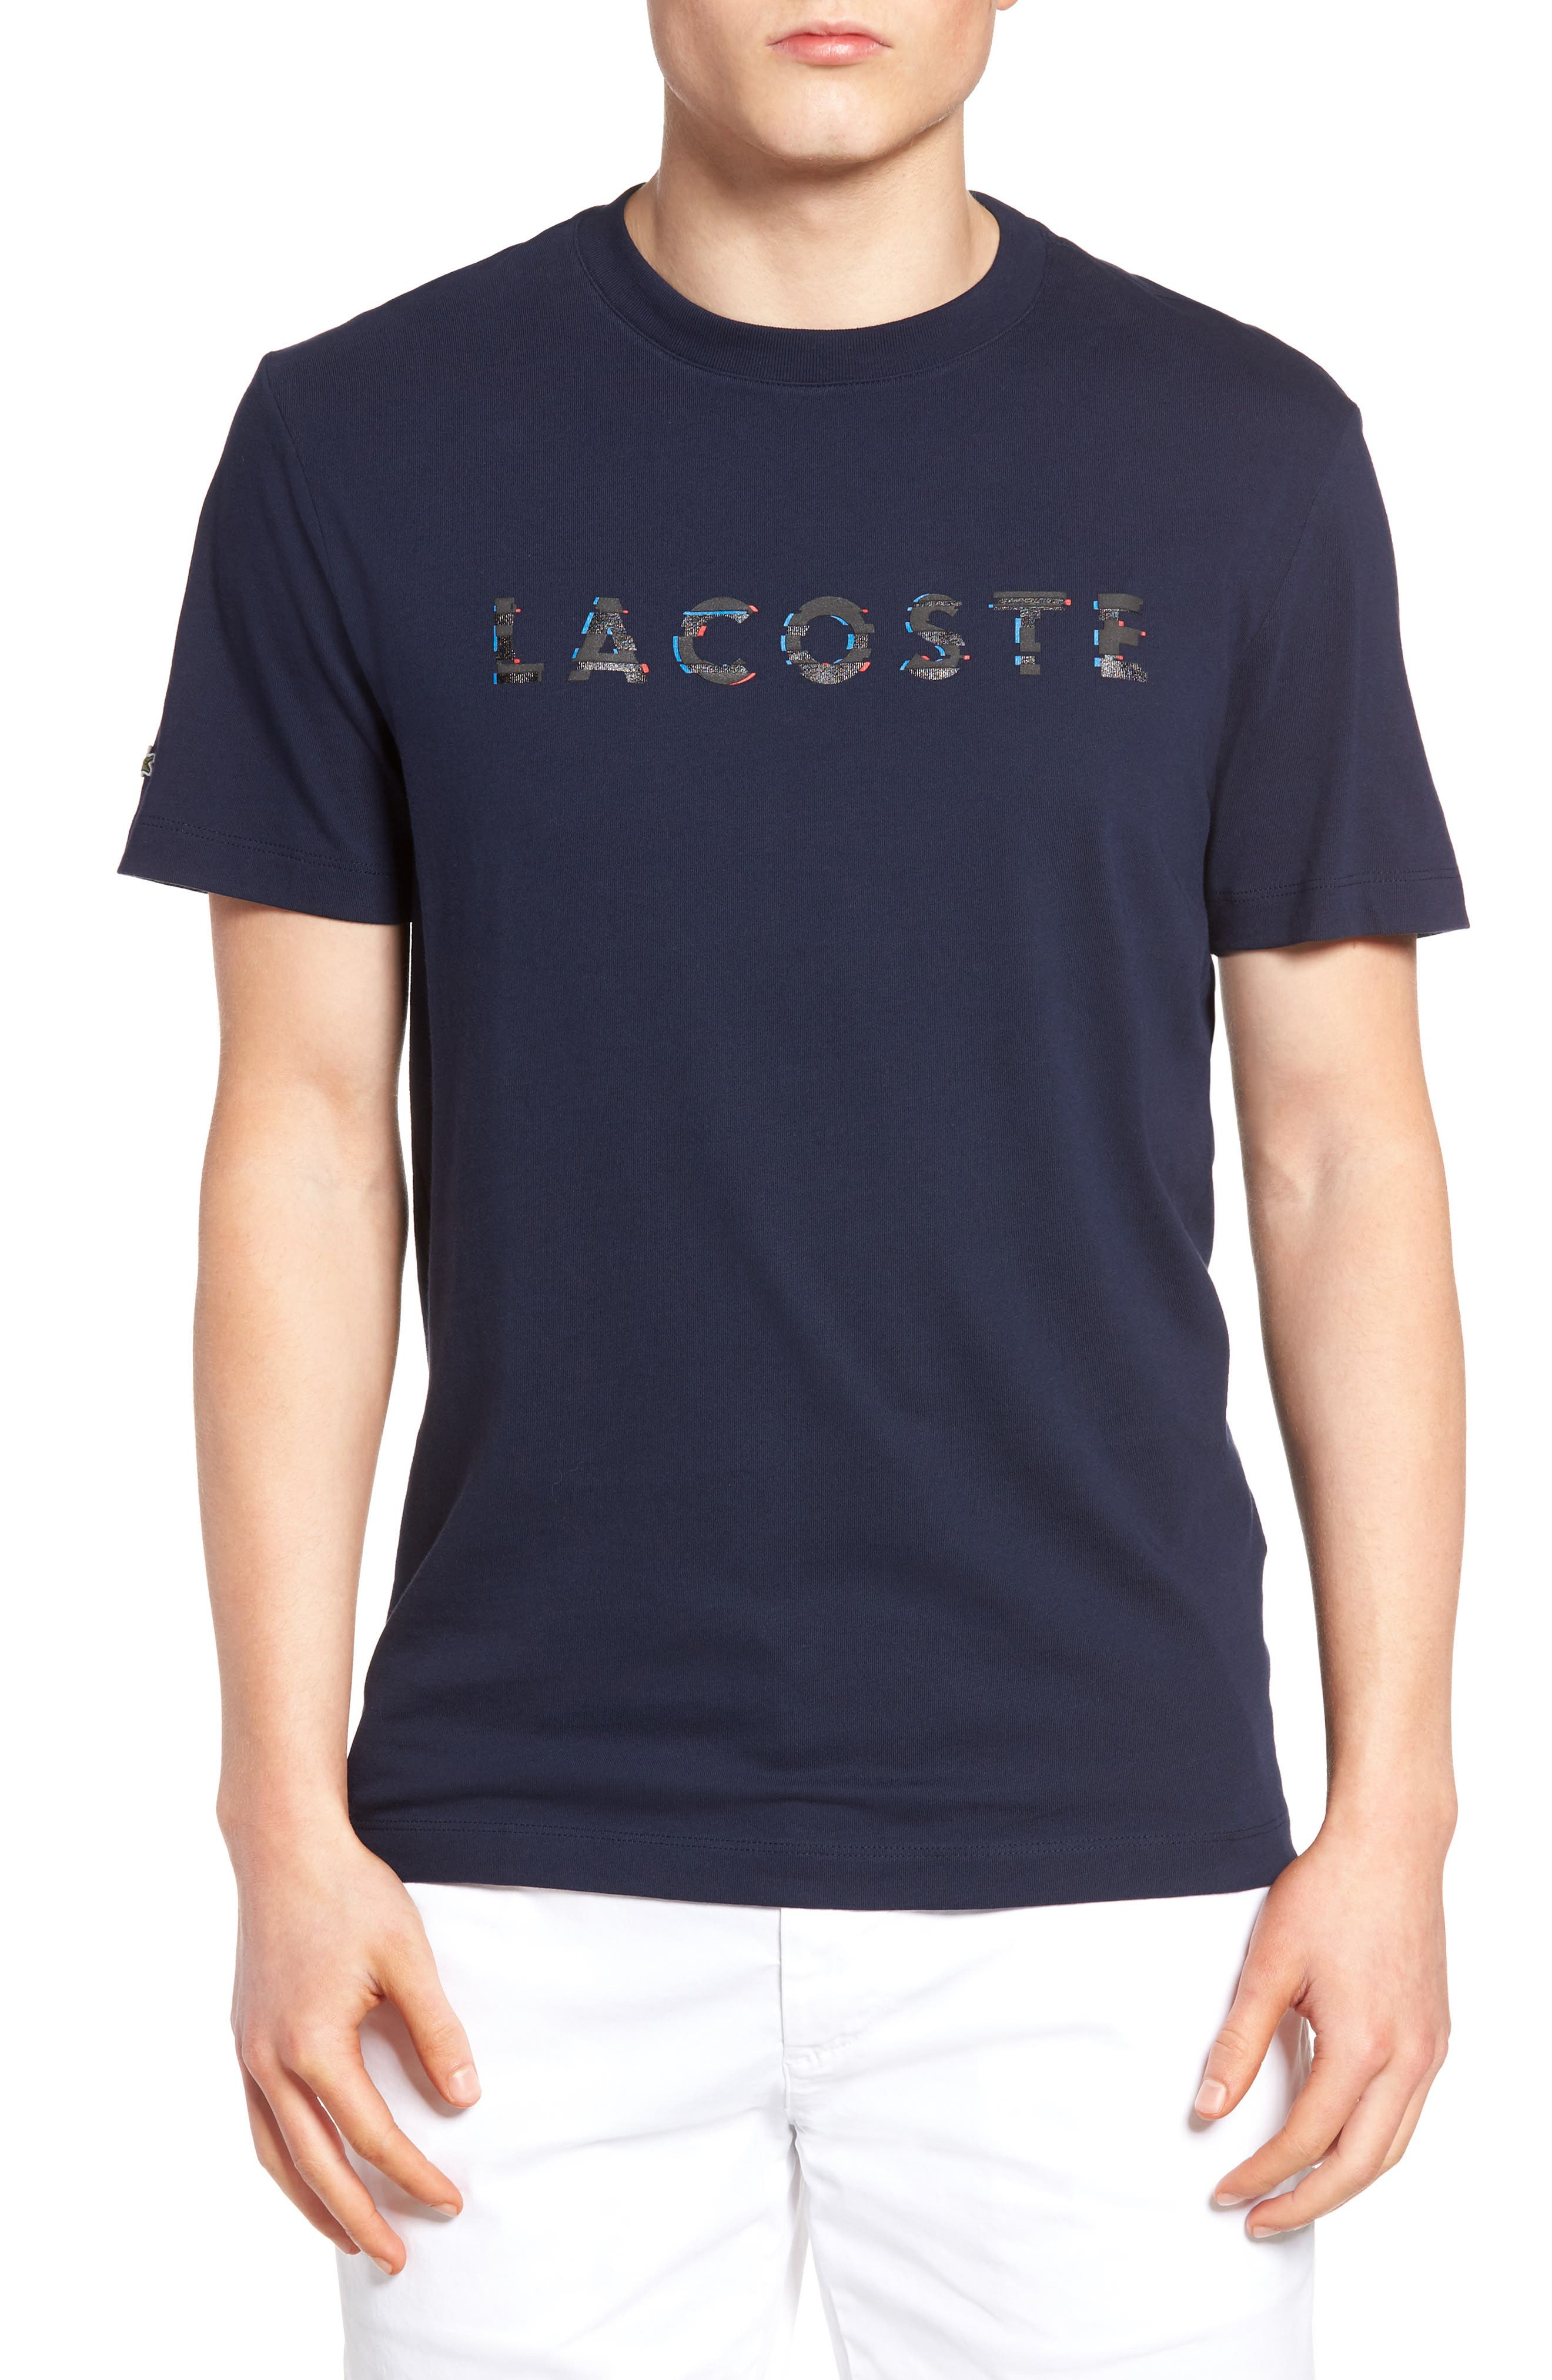 Alternate Image 1 Selected - Lacoste 3D Logo Graphic T-Shirt